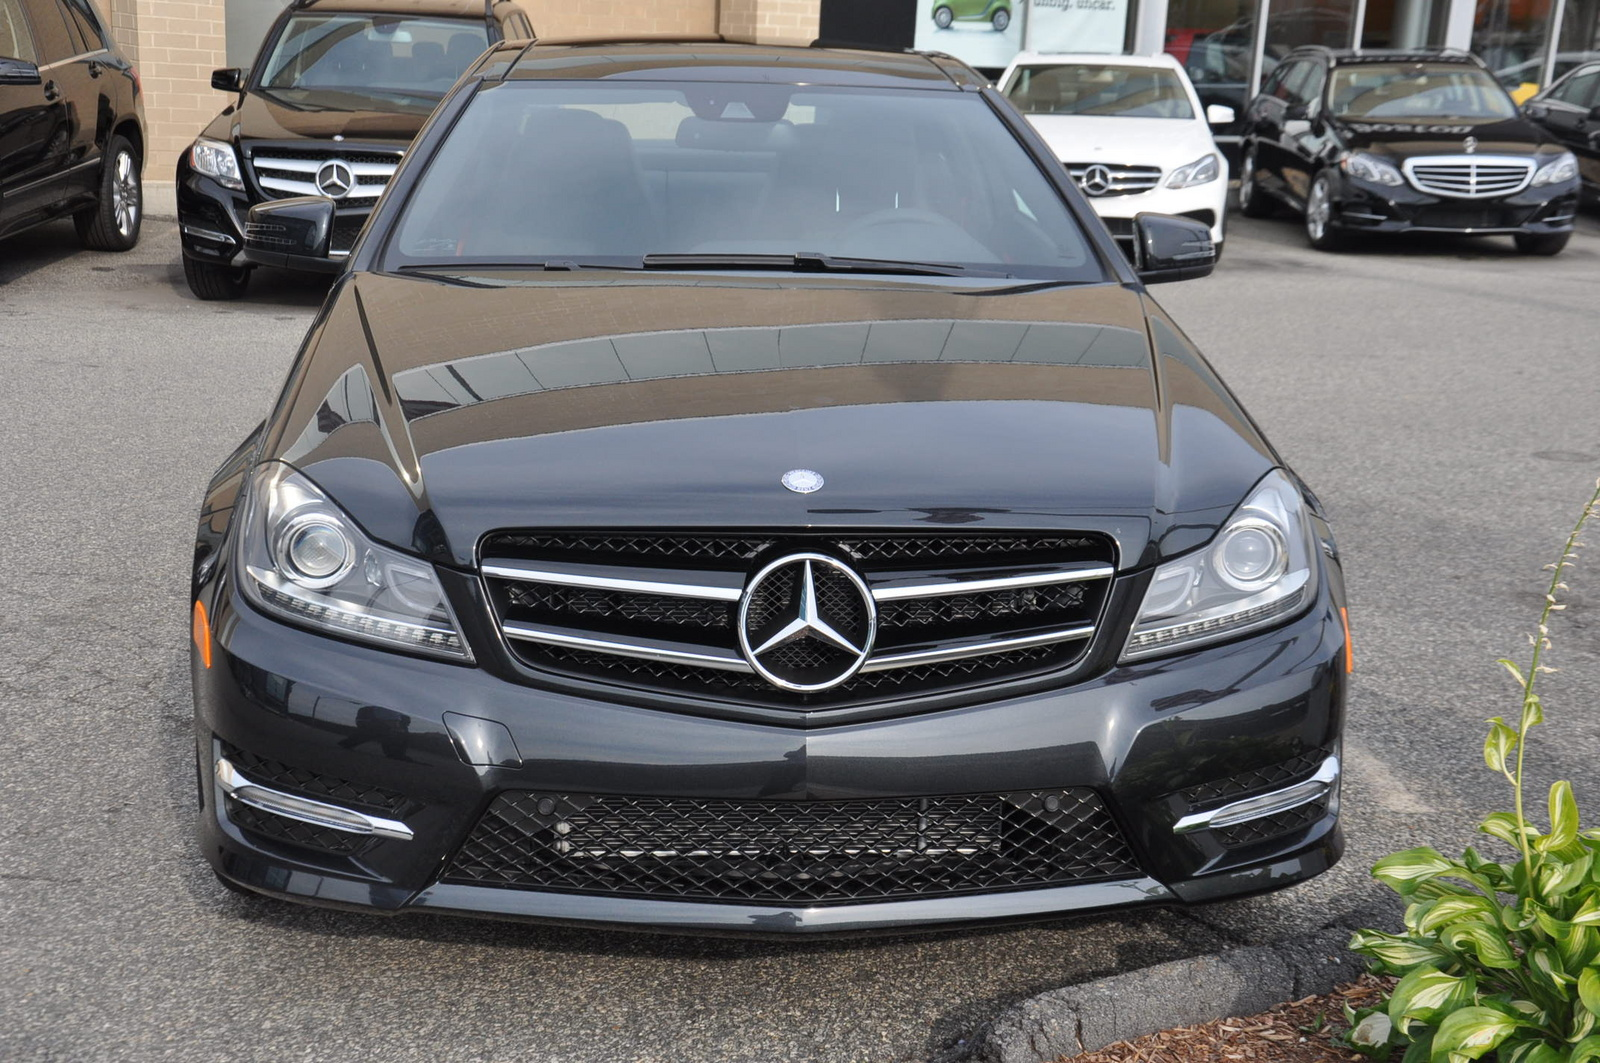 New 2014 2015 mercedes benz c class for sale cargurus for Benz mercedes for sale